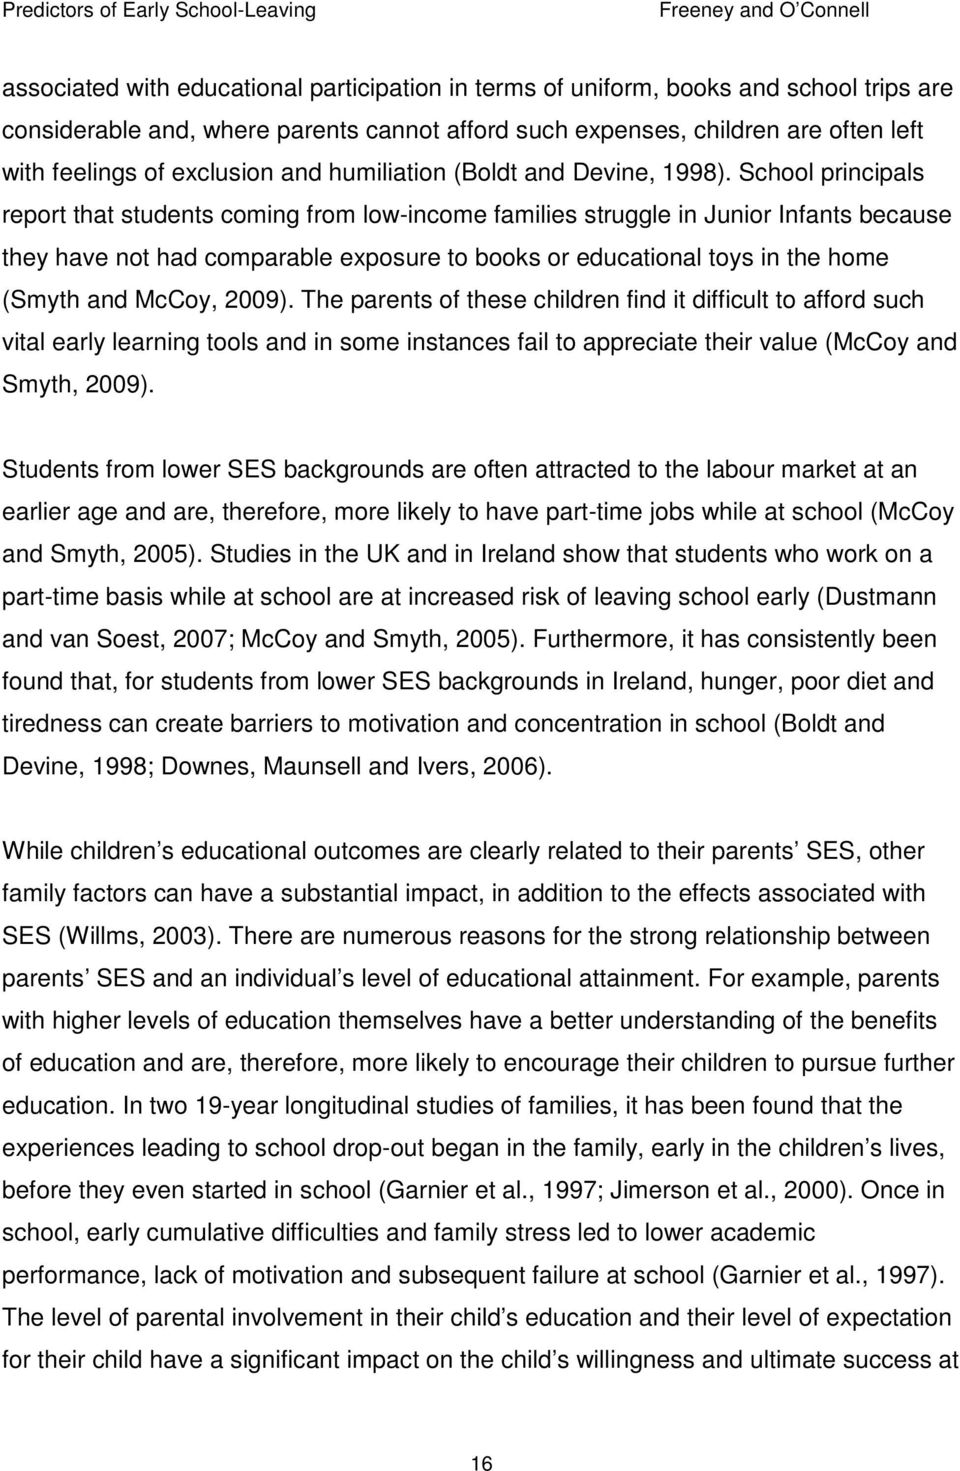 School principals report that students coming from low-income families struggle in Junior Infants because they have not had comparable exposure to books or educational toys in the home (Smyth and